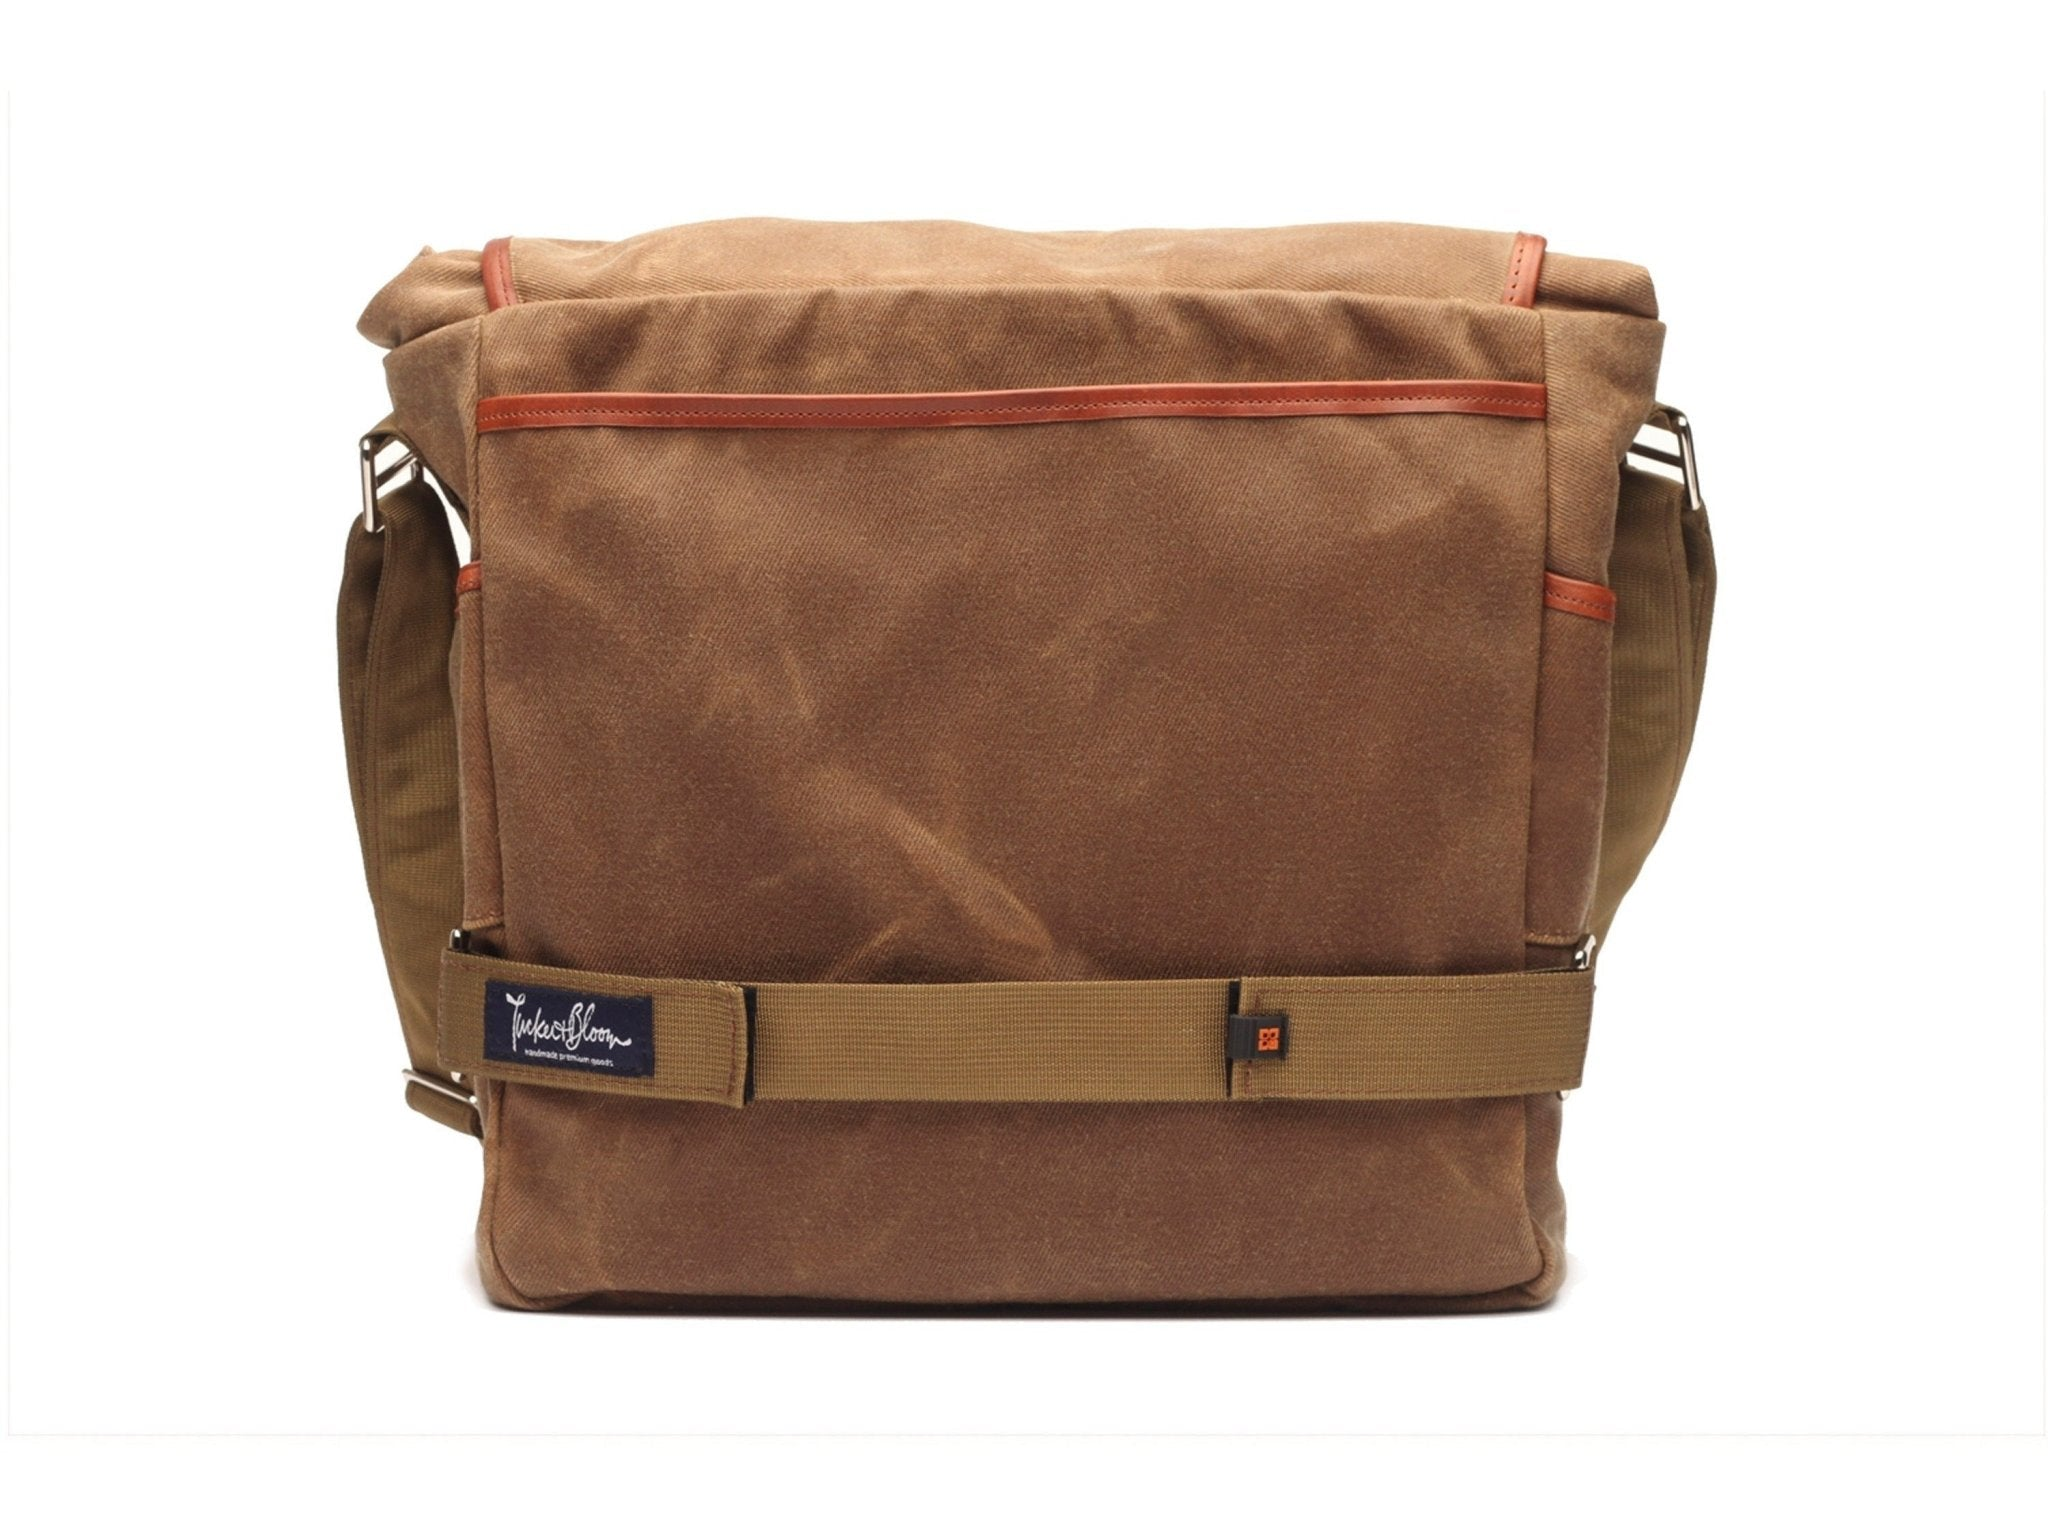 North To South Messenger Bag with waxed canvas and leather trim ... df65bff66a5cd